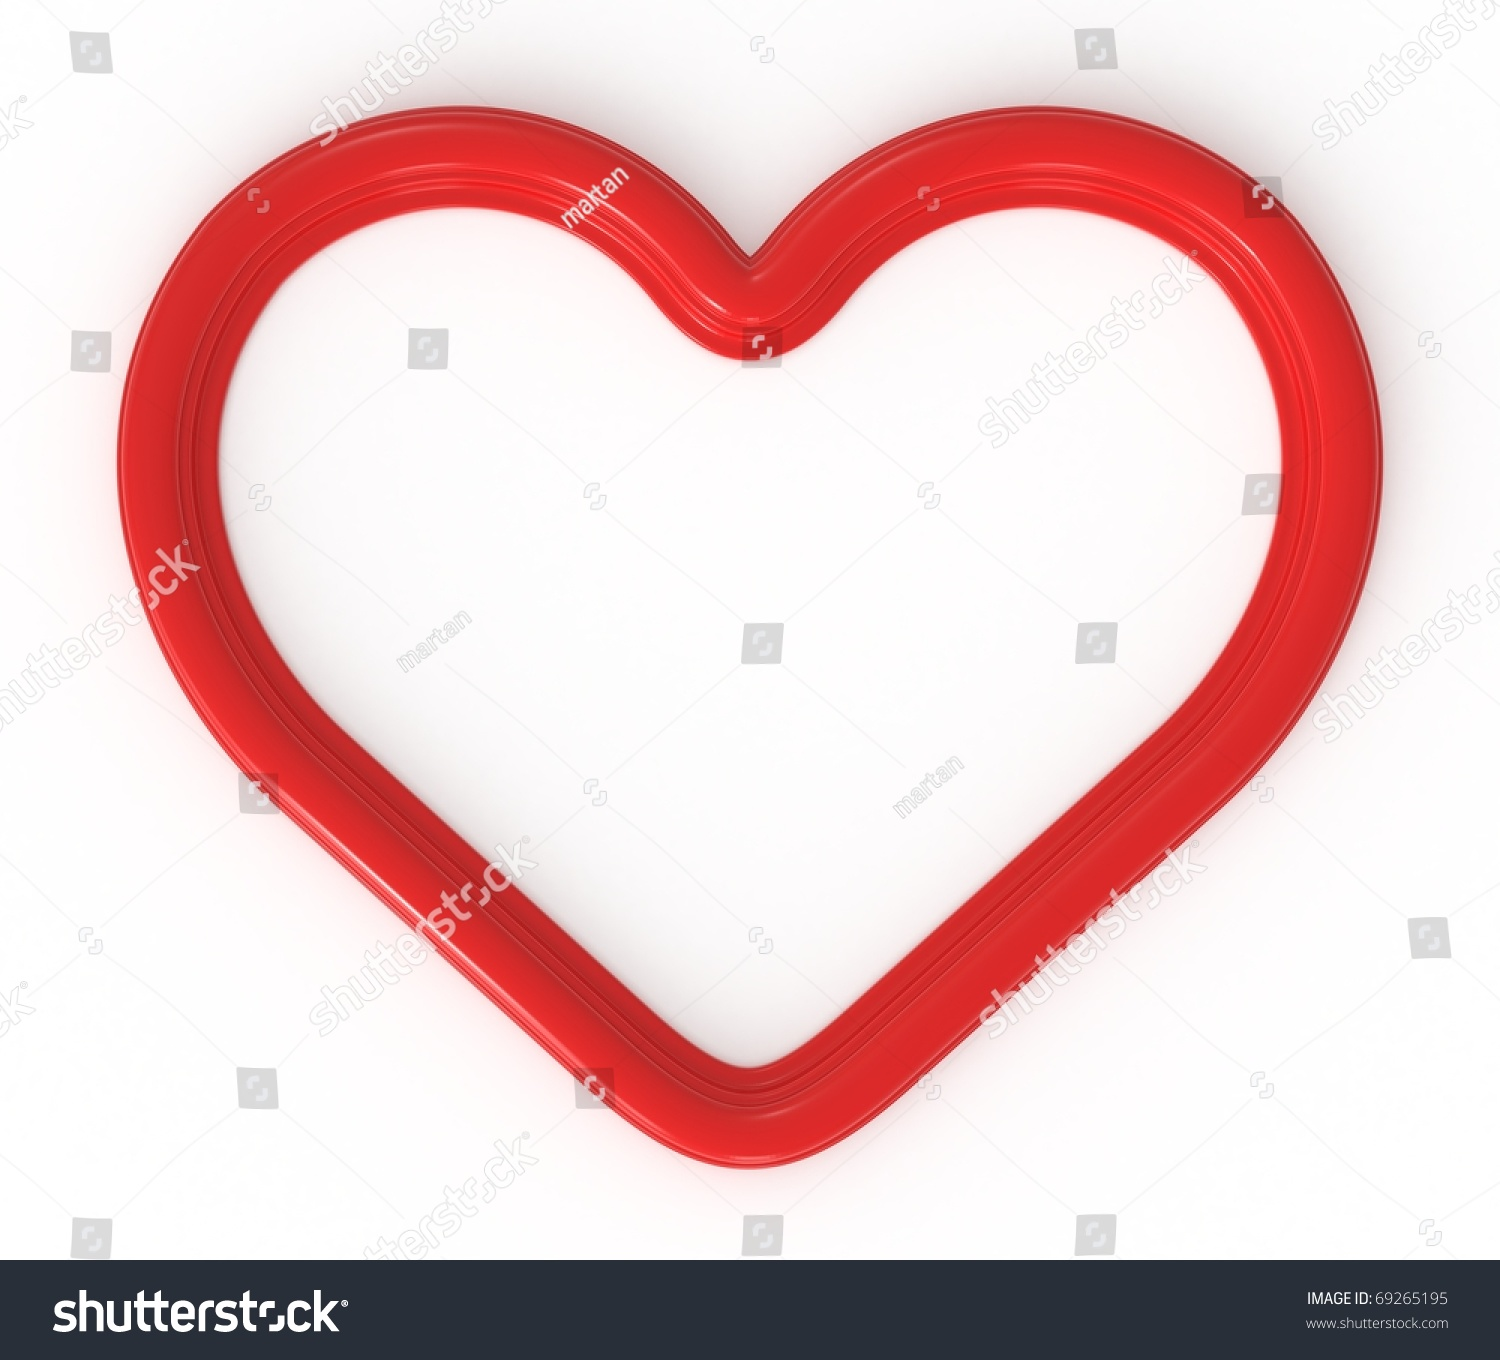 Amazoncom heart shaped picture frame